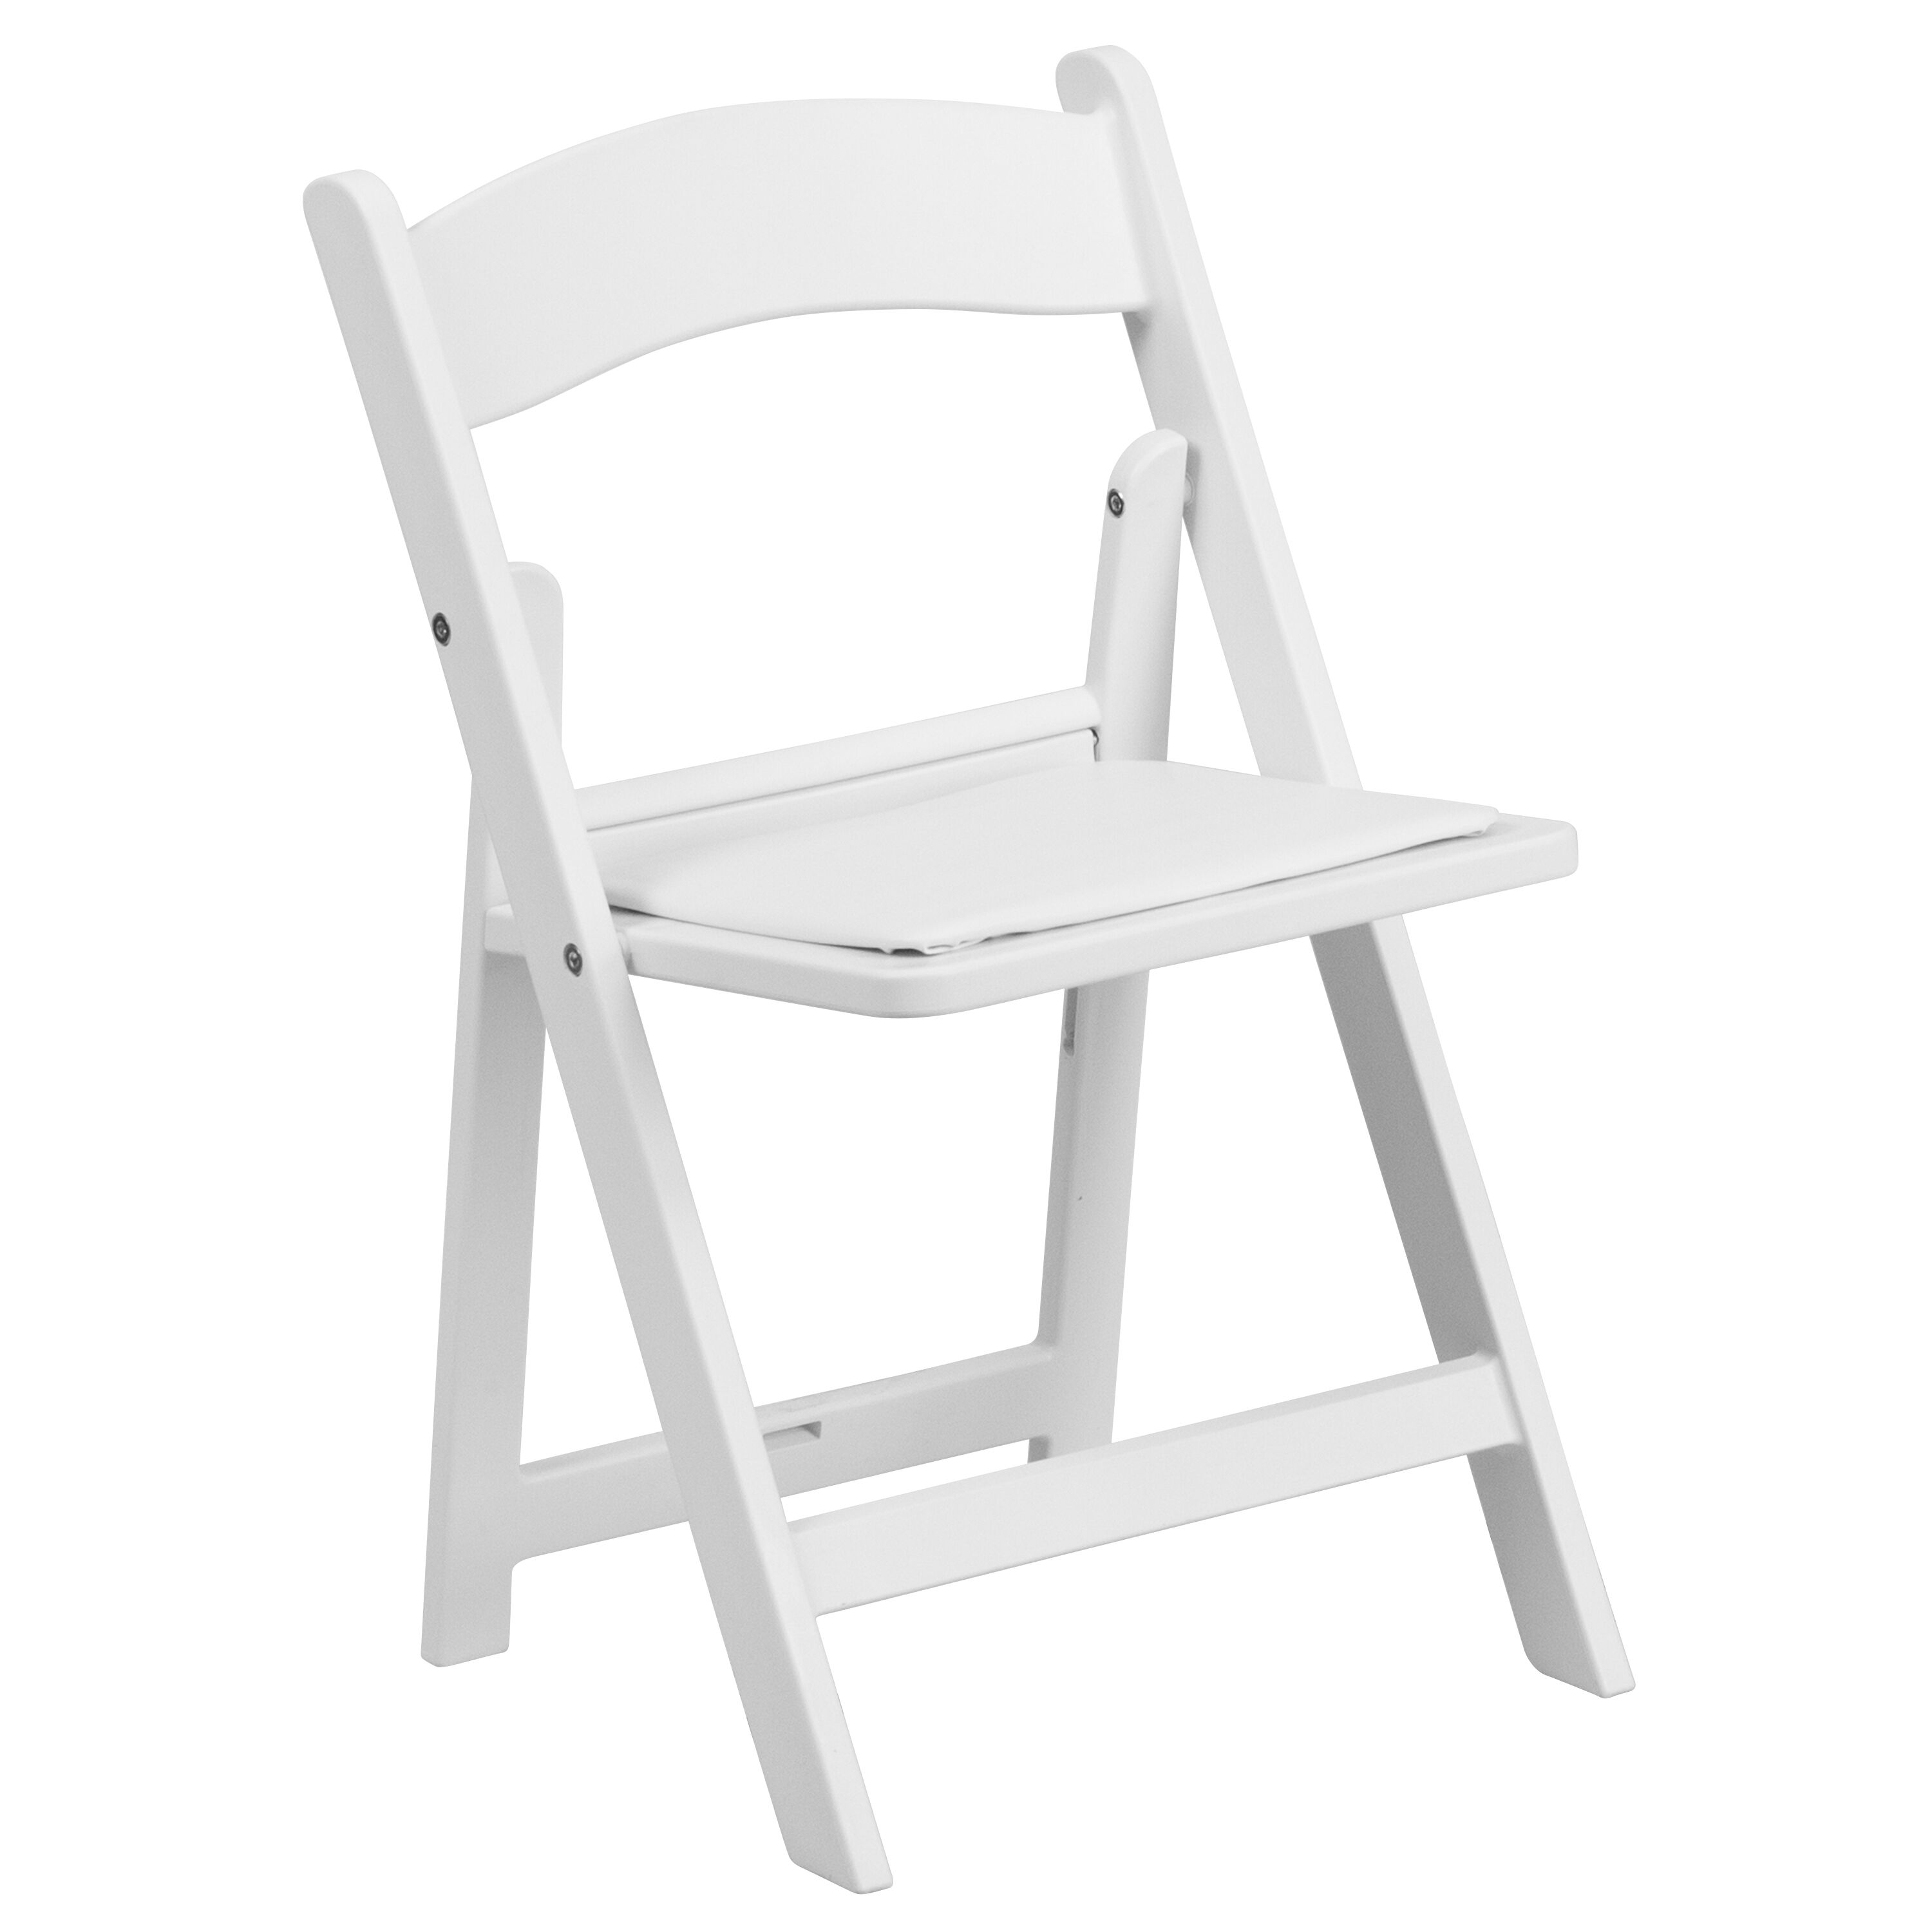 resin folding chairs for sale camping with canopy kids white chair le l 1k gg schoolfurniture4less com our vinyl padded seat is on now